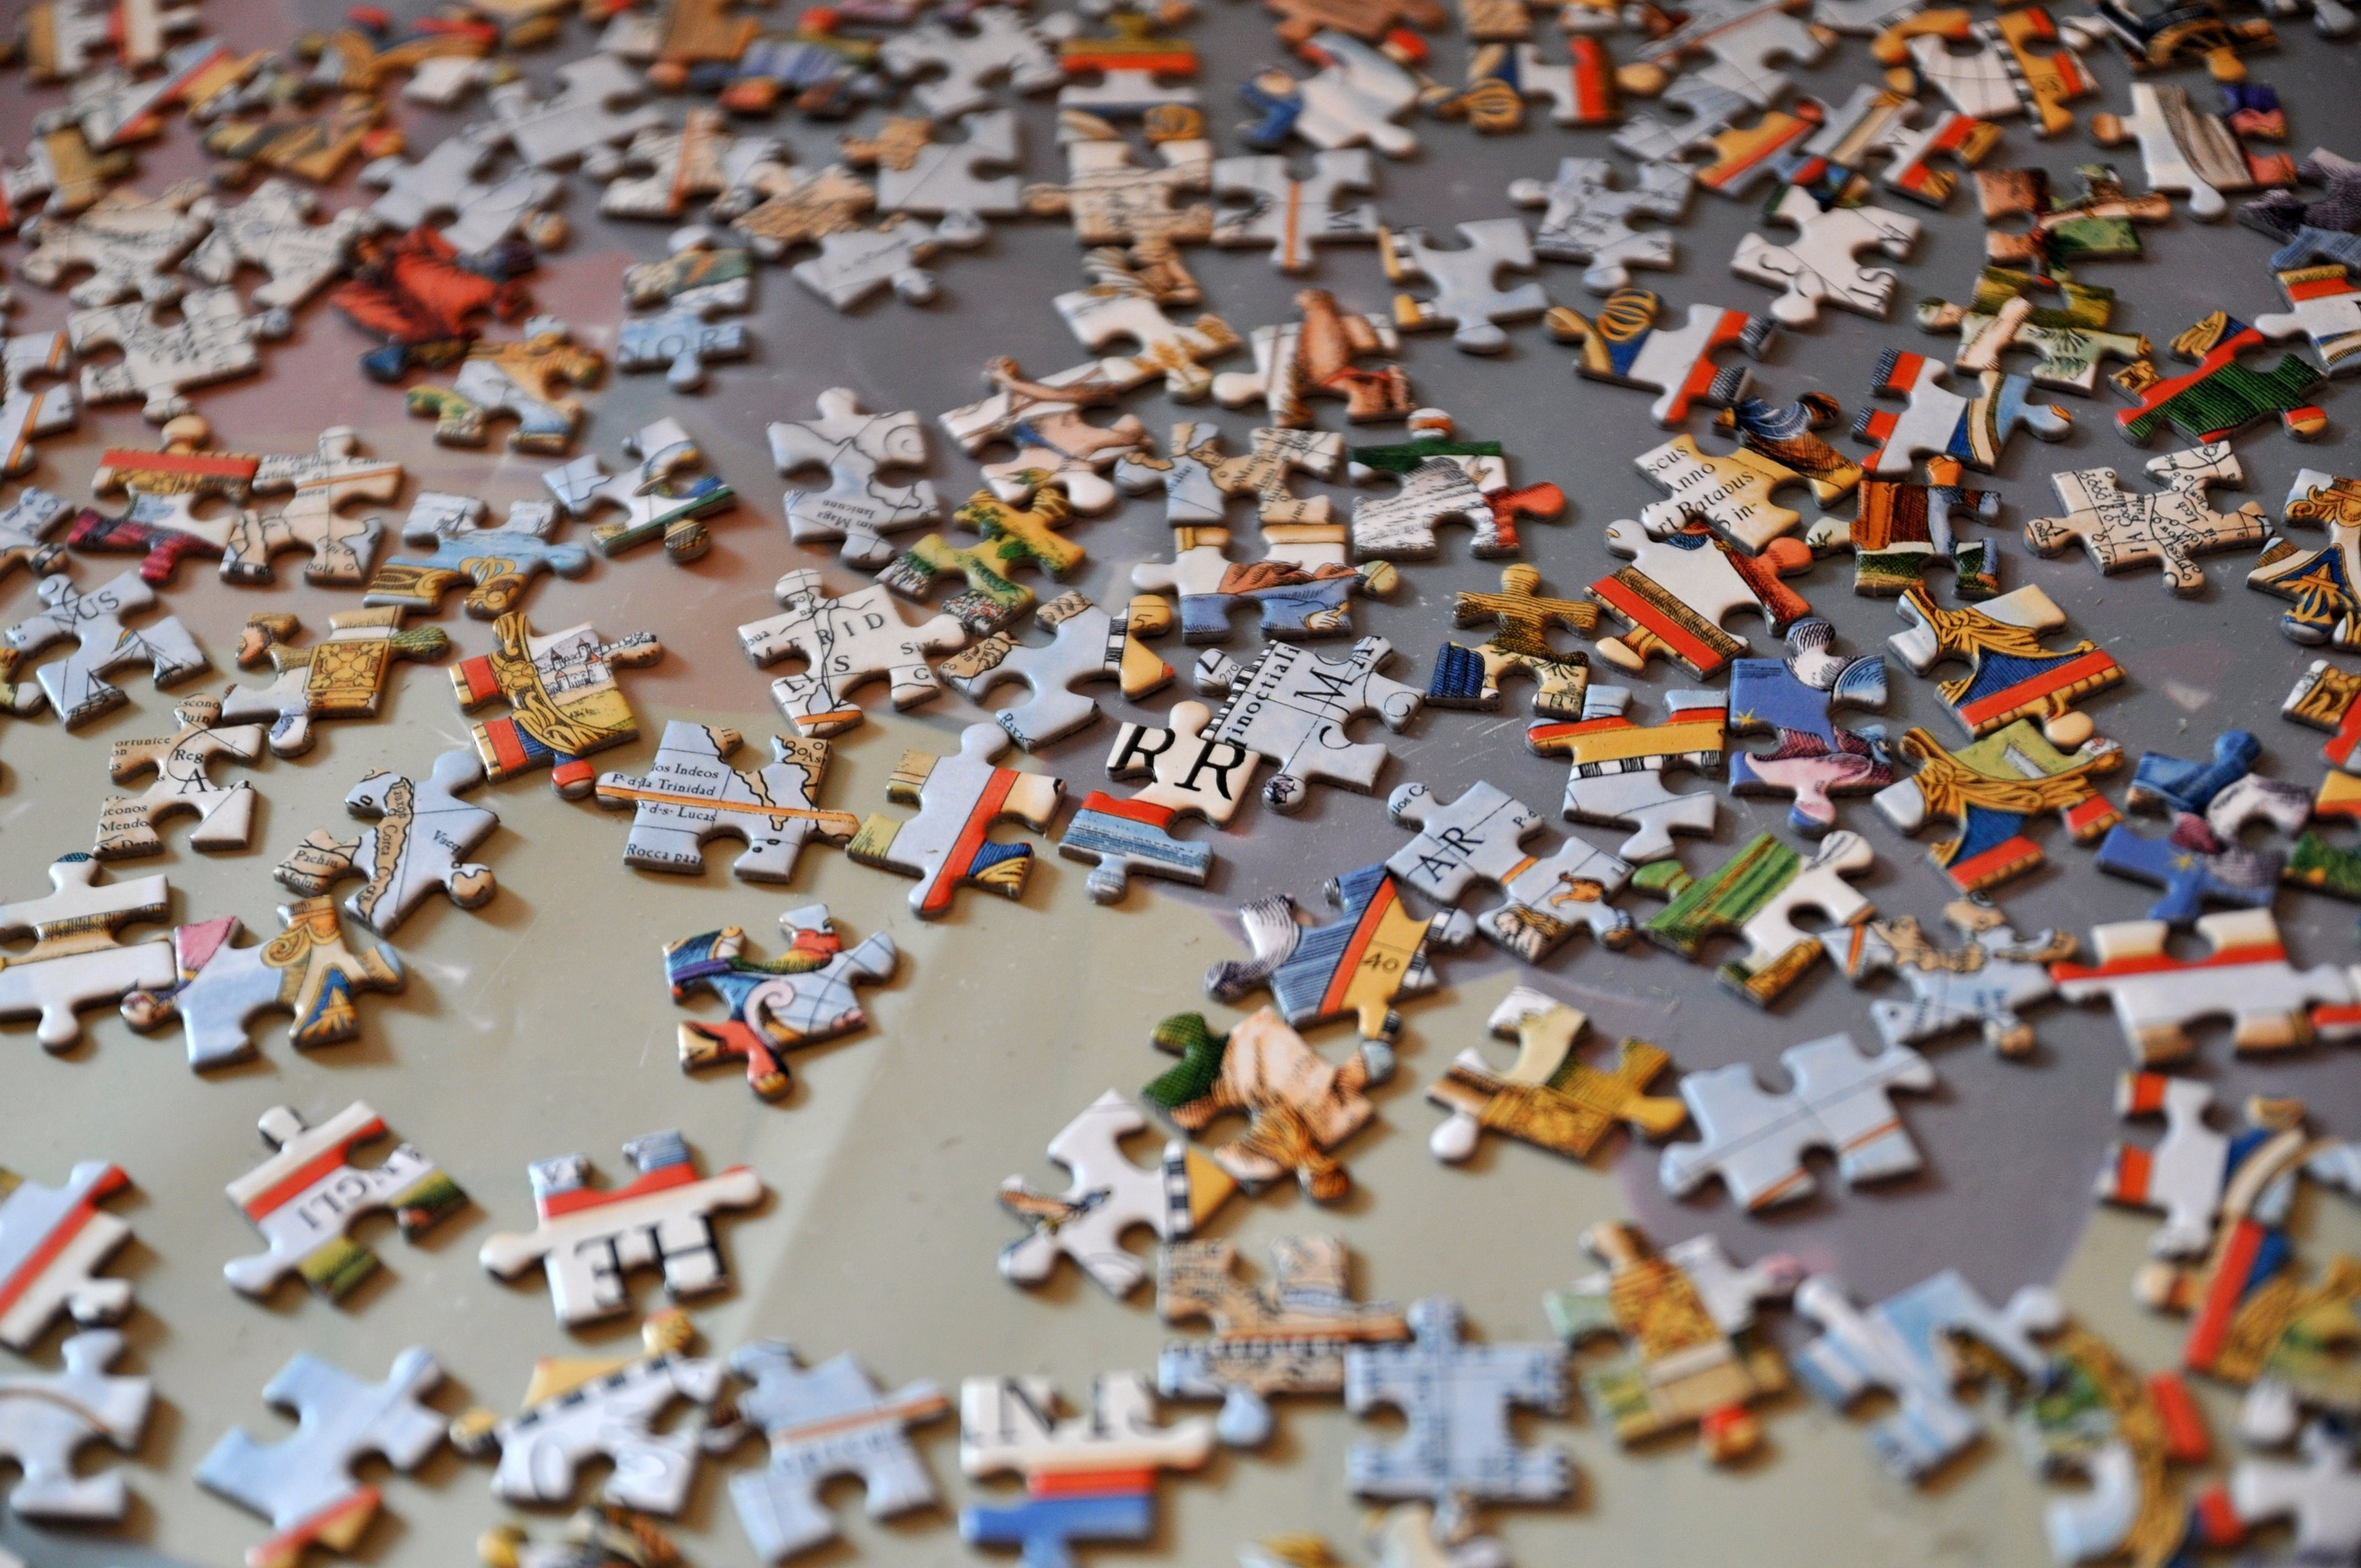 Jigsaw puzzle on the floor.Puzzle pieces.A pile of puzzle pieces on a surface.